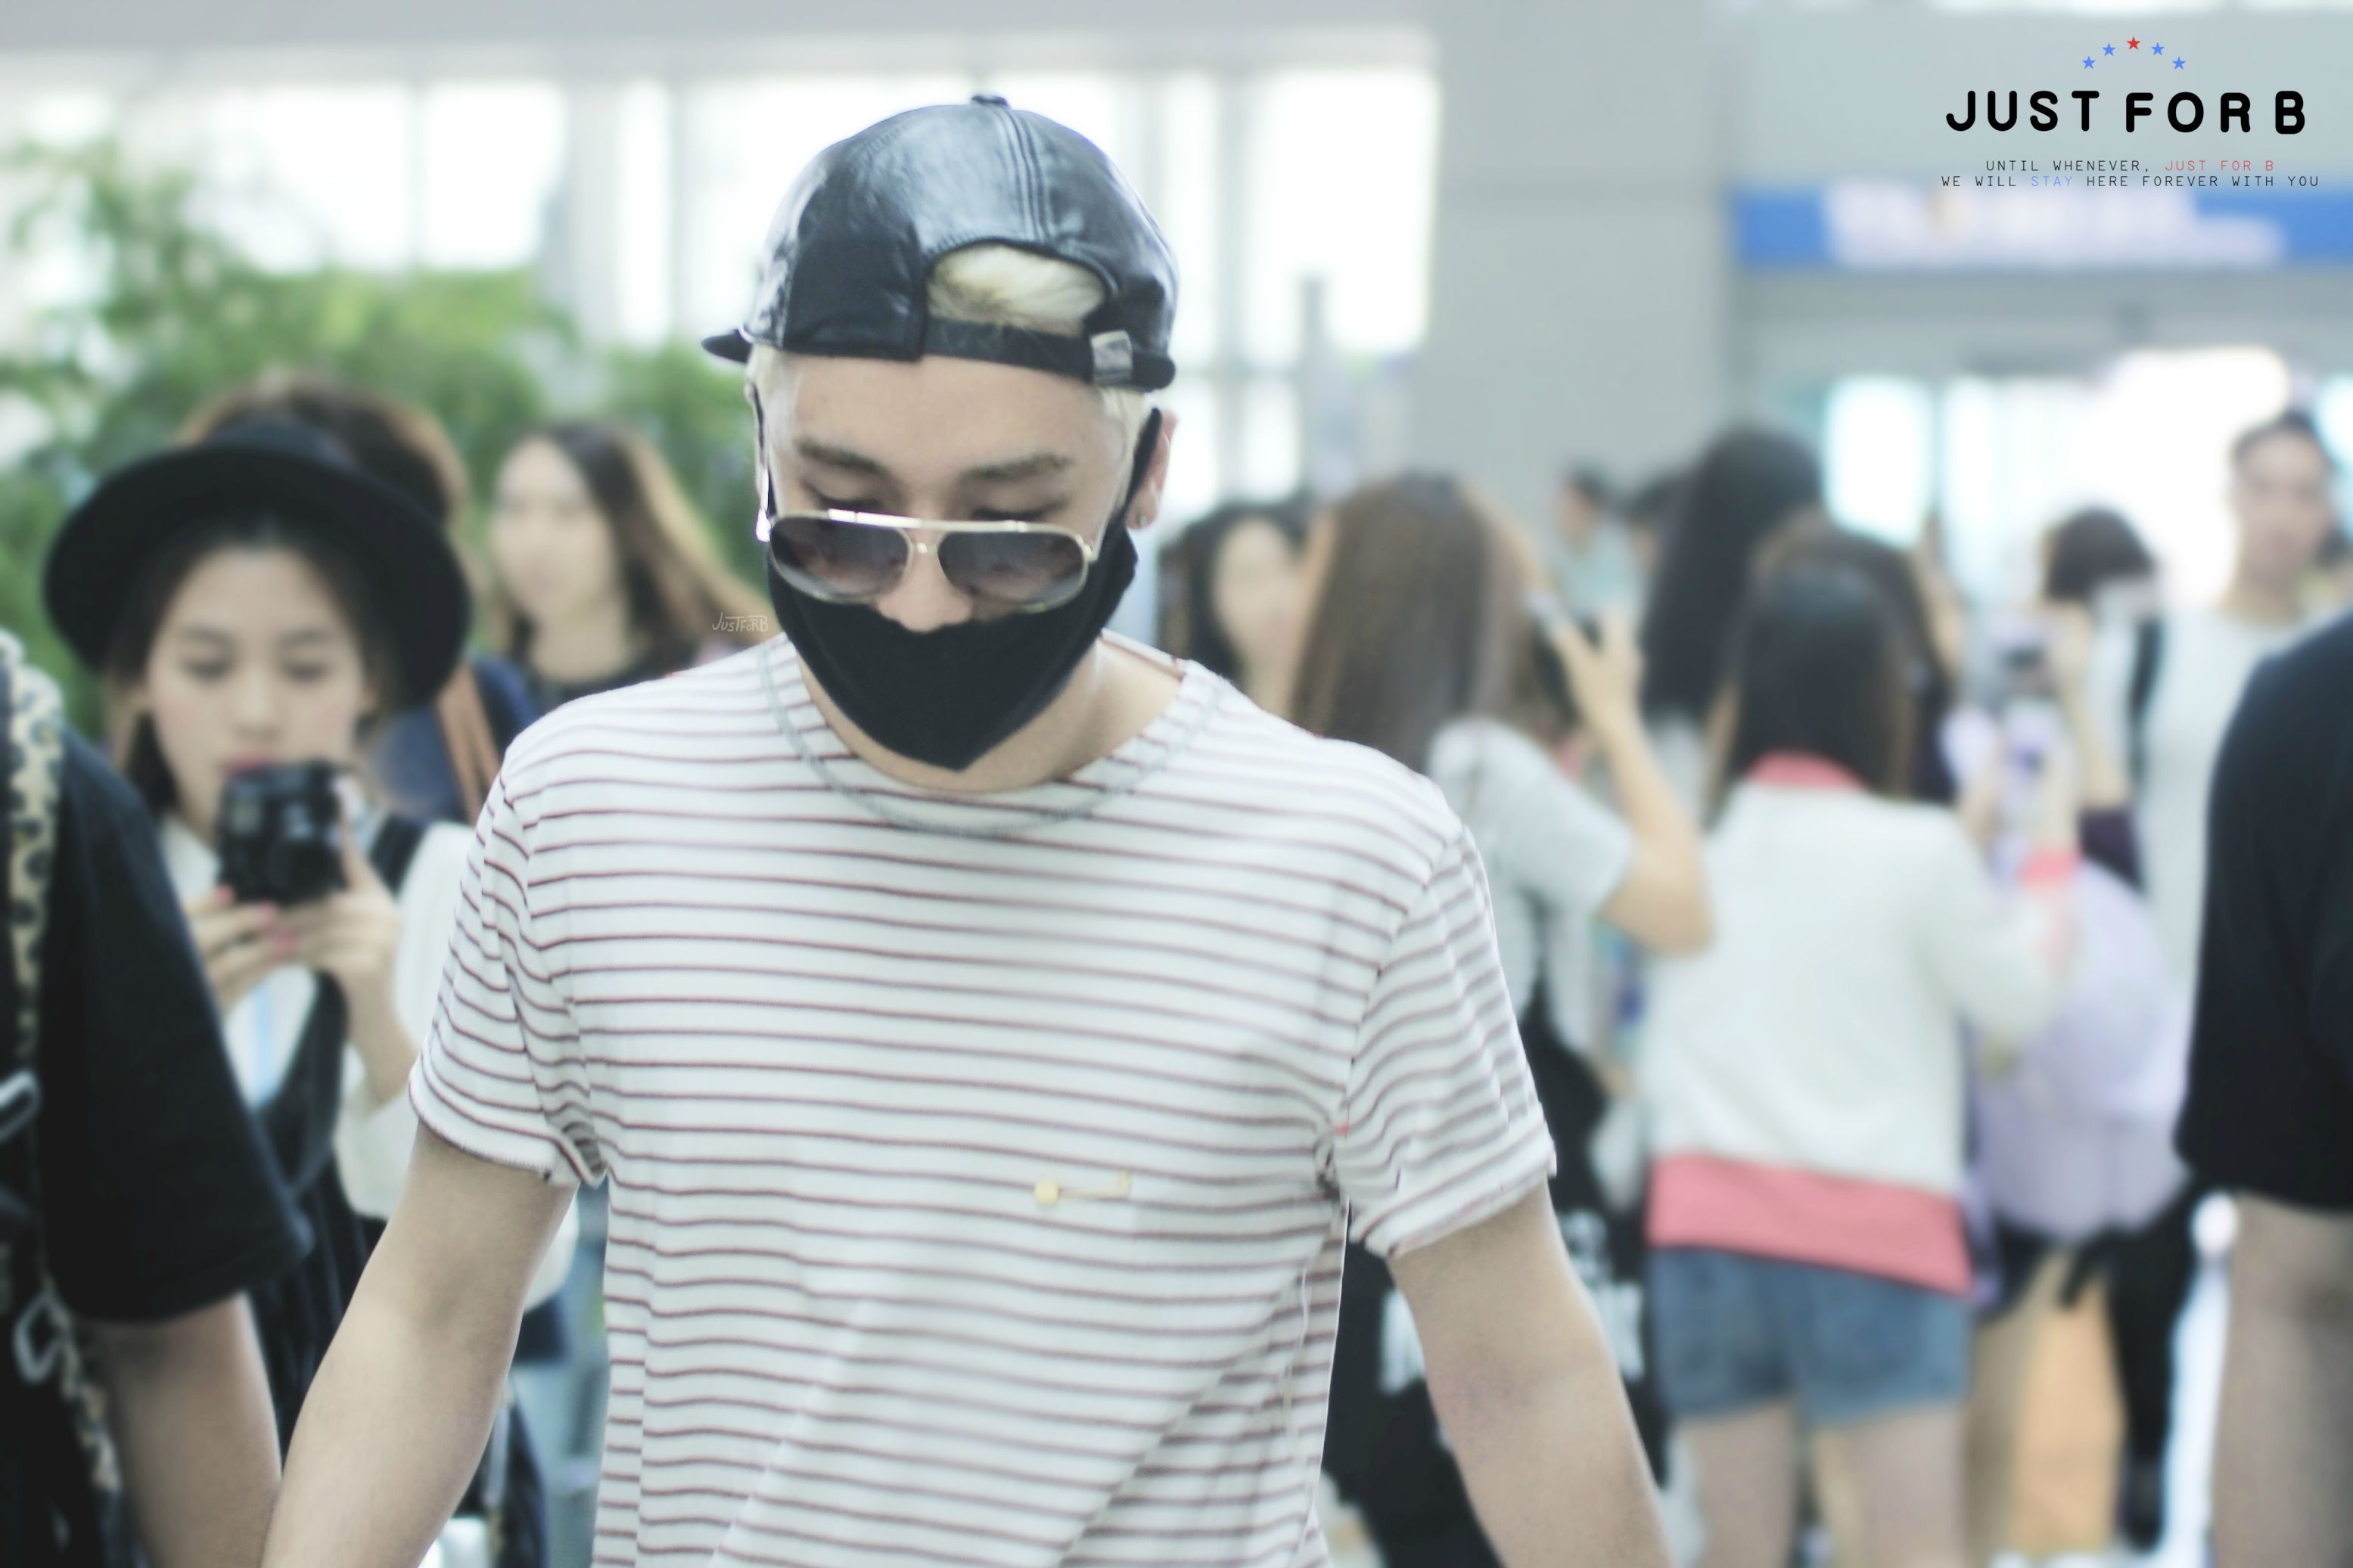 HQs BIGBANG Incheon to Guangzhou 2015-05-29 justforBB 007.jpg